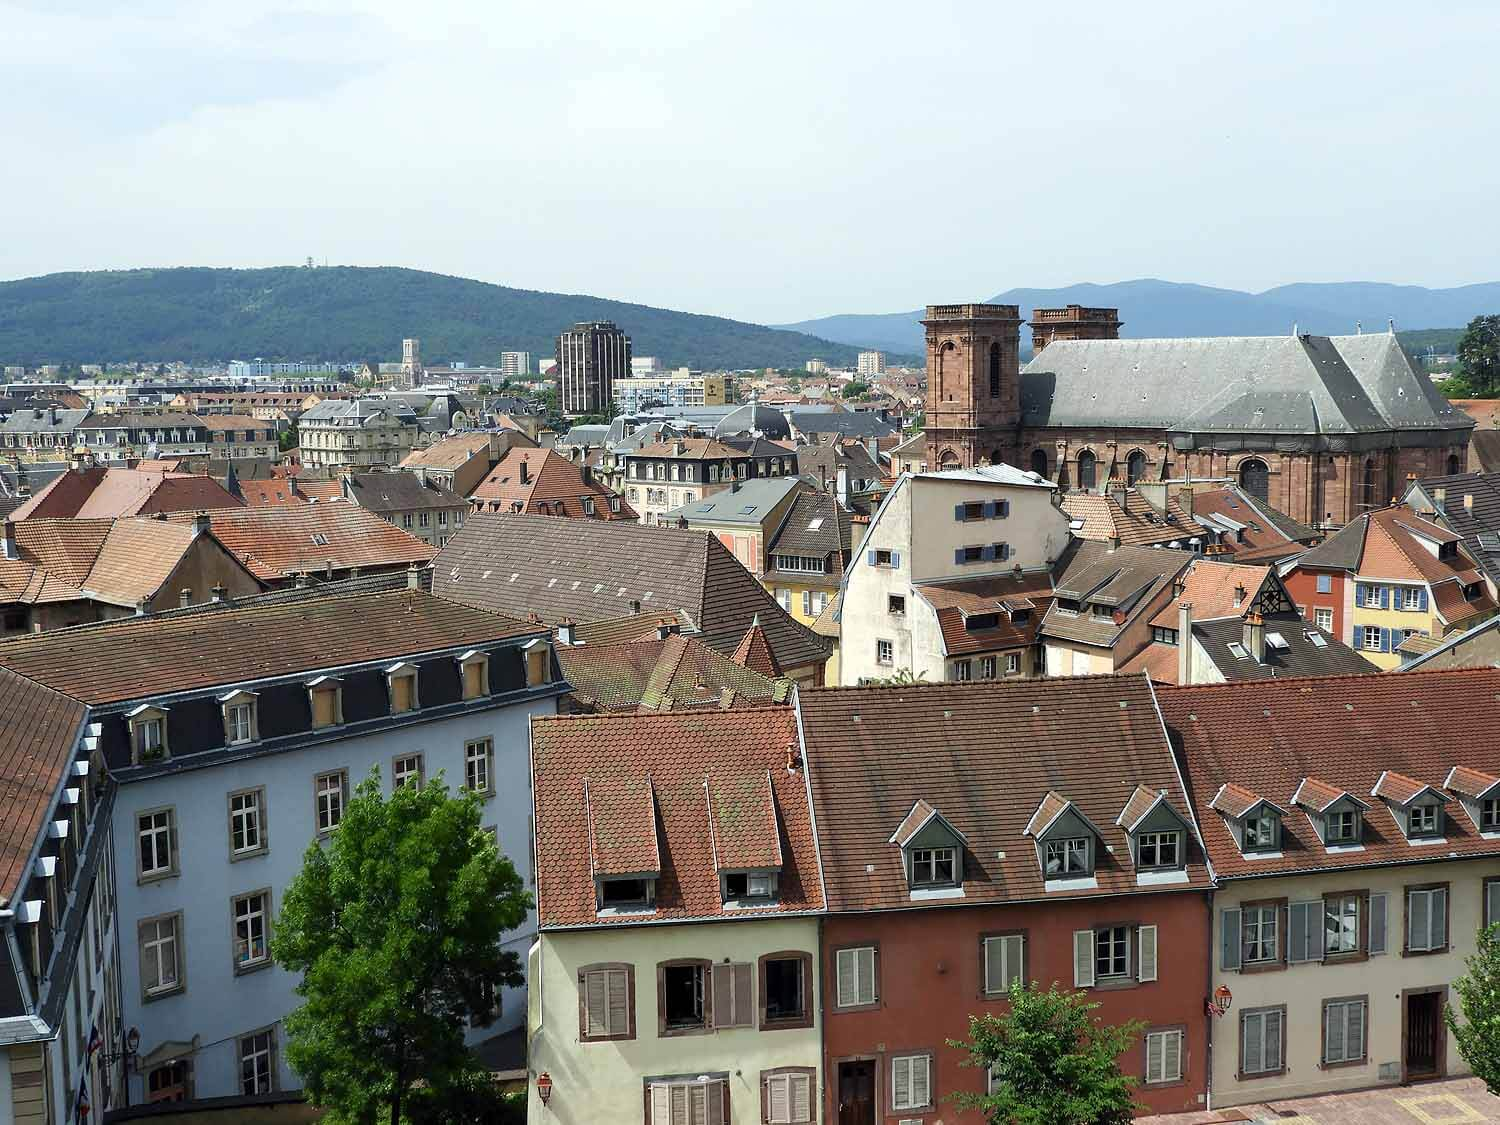 france-belfort-rooftops-cathedral.JPG